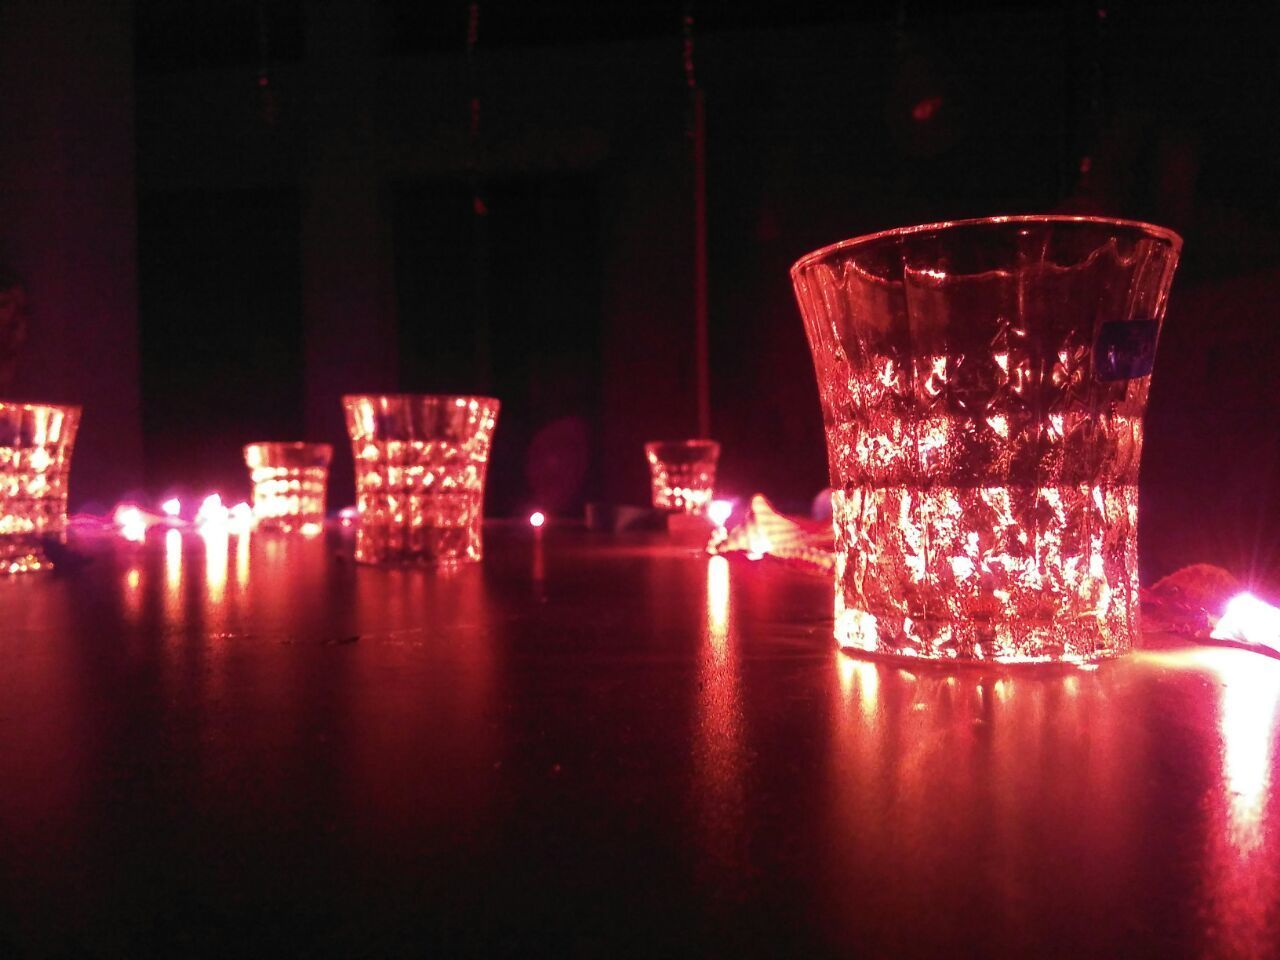 Red Reflection Drinking Glass Shot Glass Alcohol Martini Glass Night Water Indoors  Drink No People Red Lights Redlightspecial Wonder Love